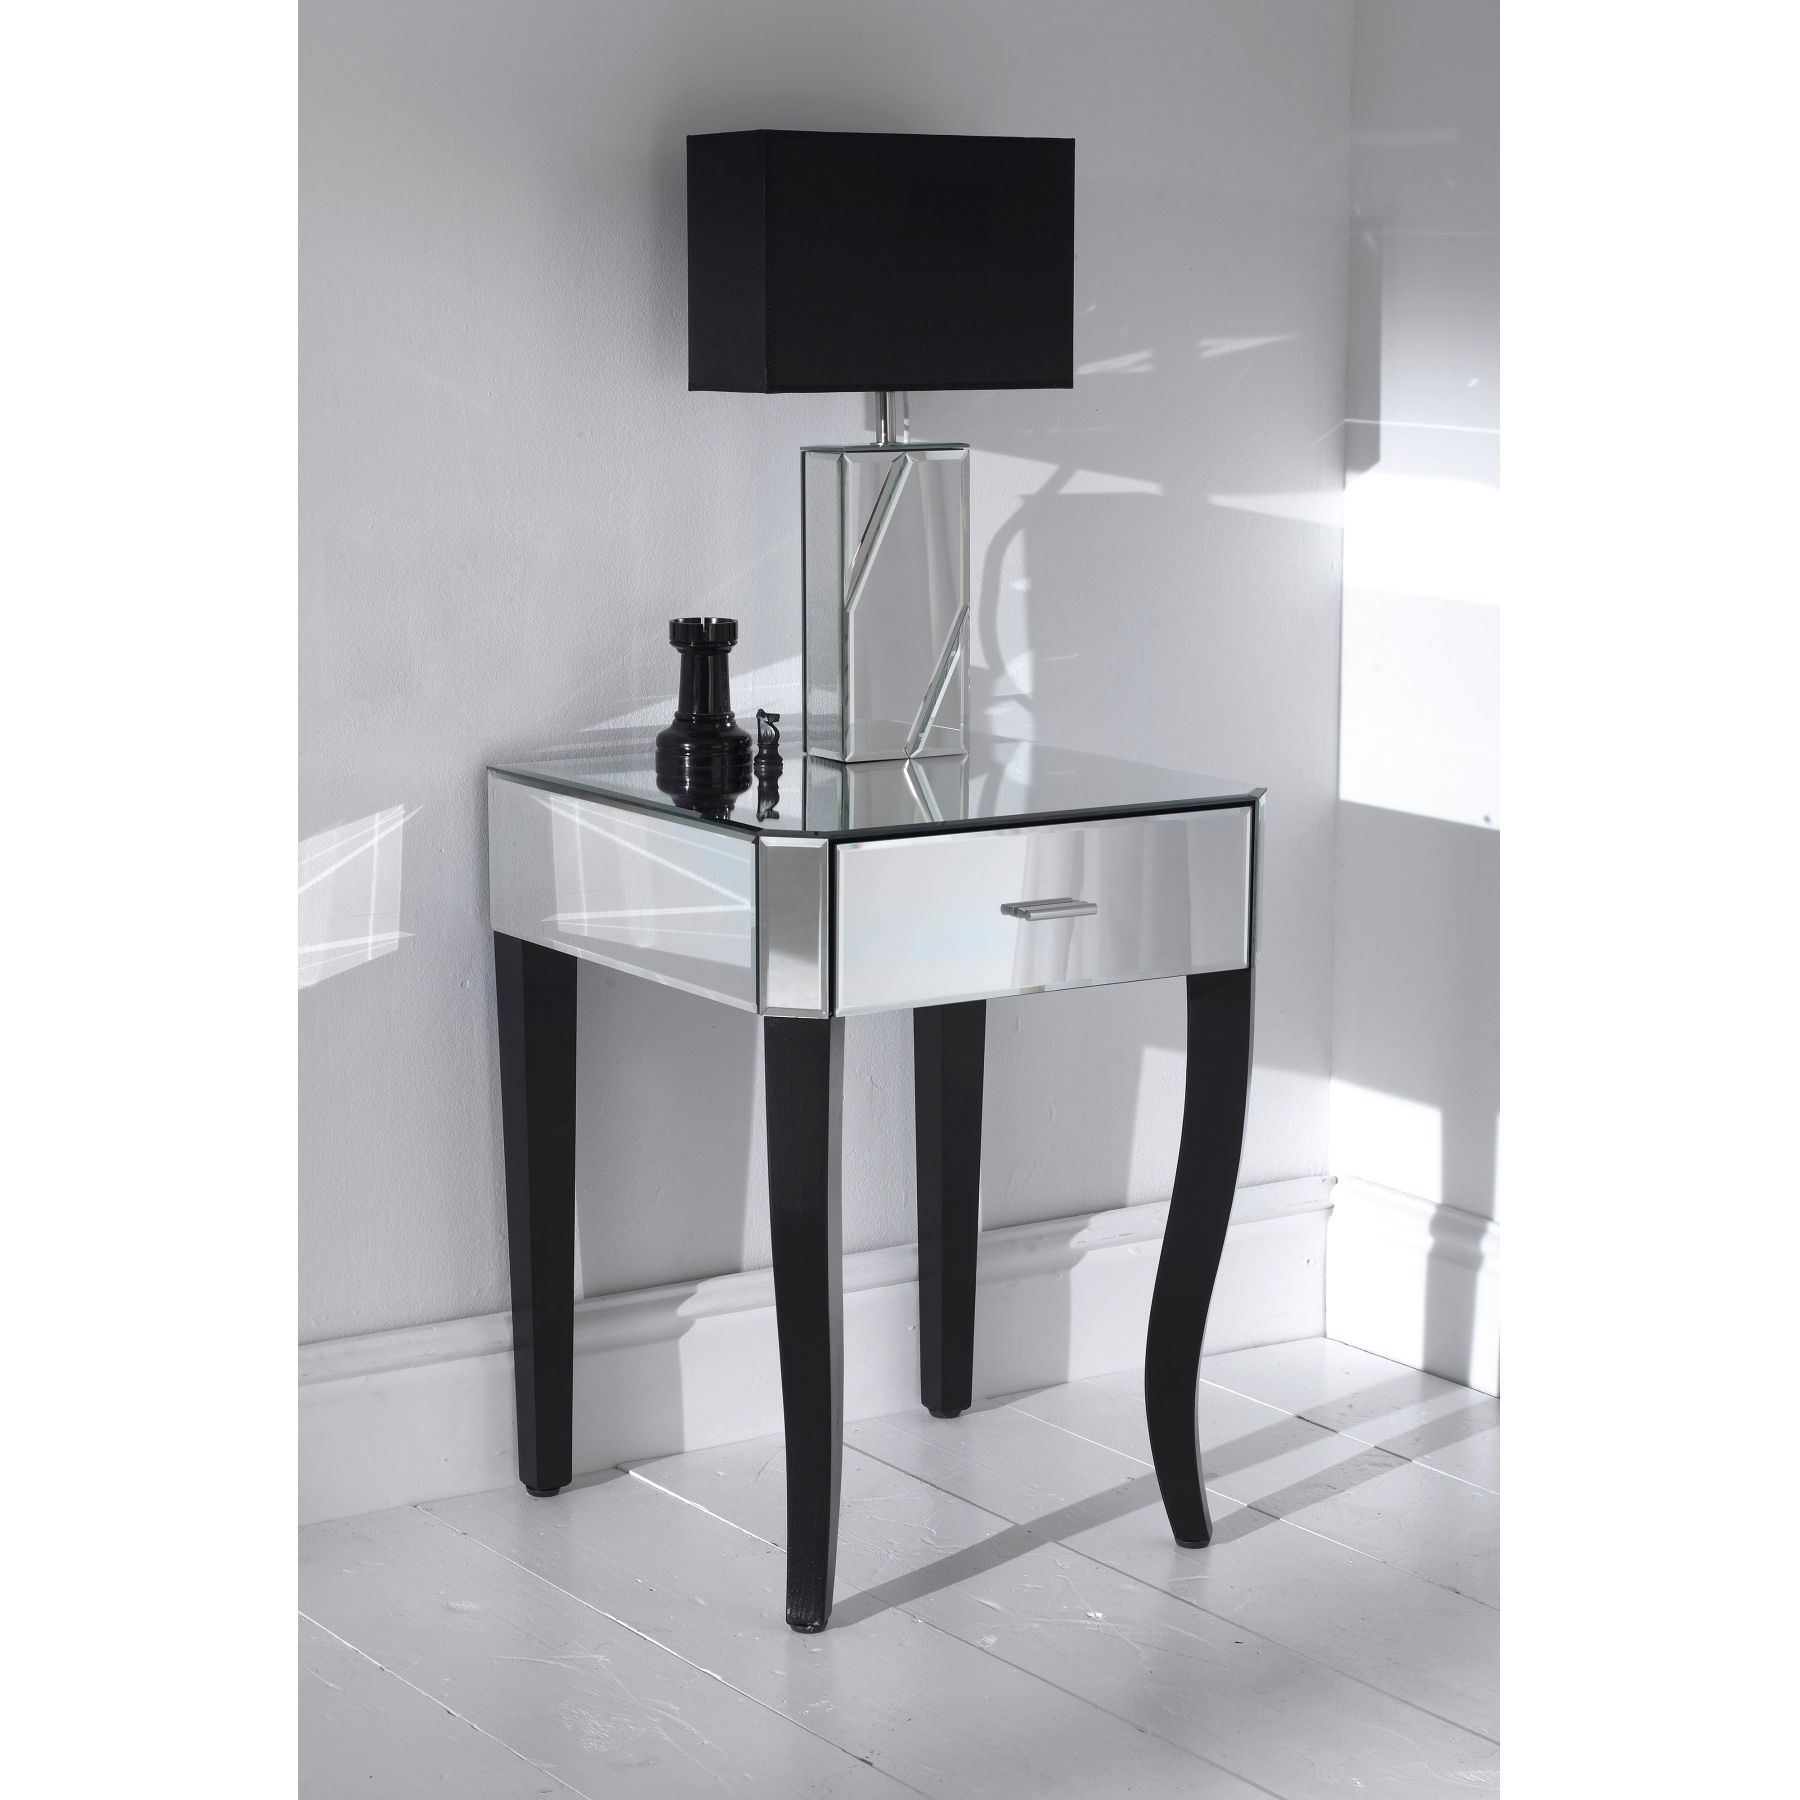 Modern black bedside table - Romano Mirrored Side Table 3735 3493_zoom Jpg